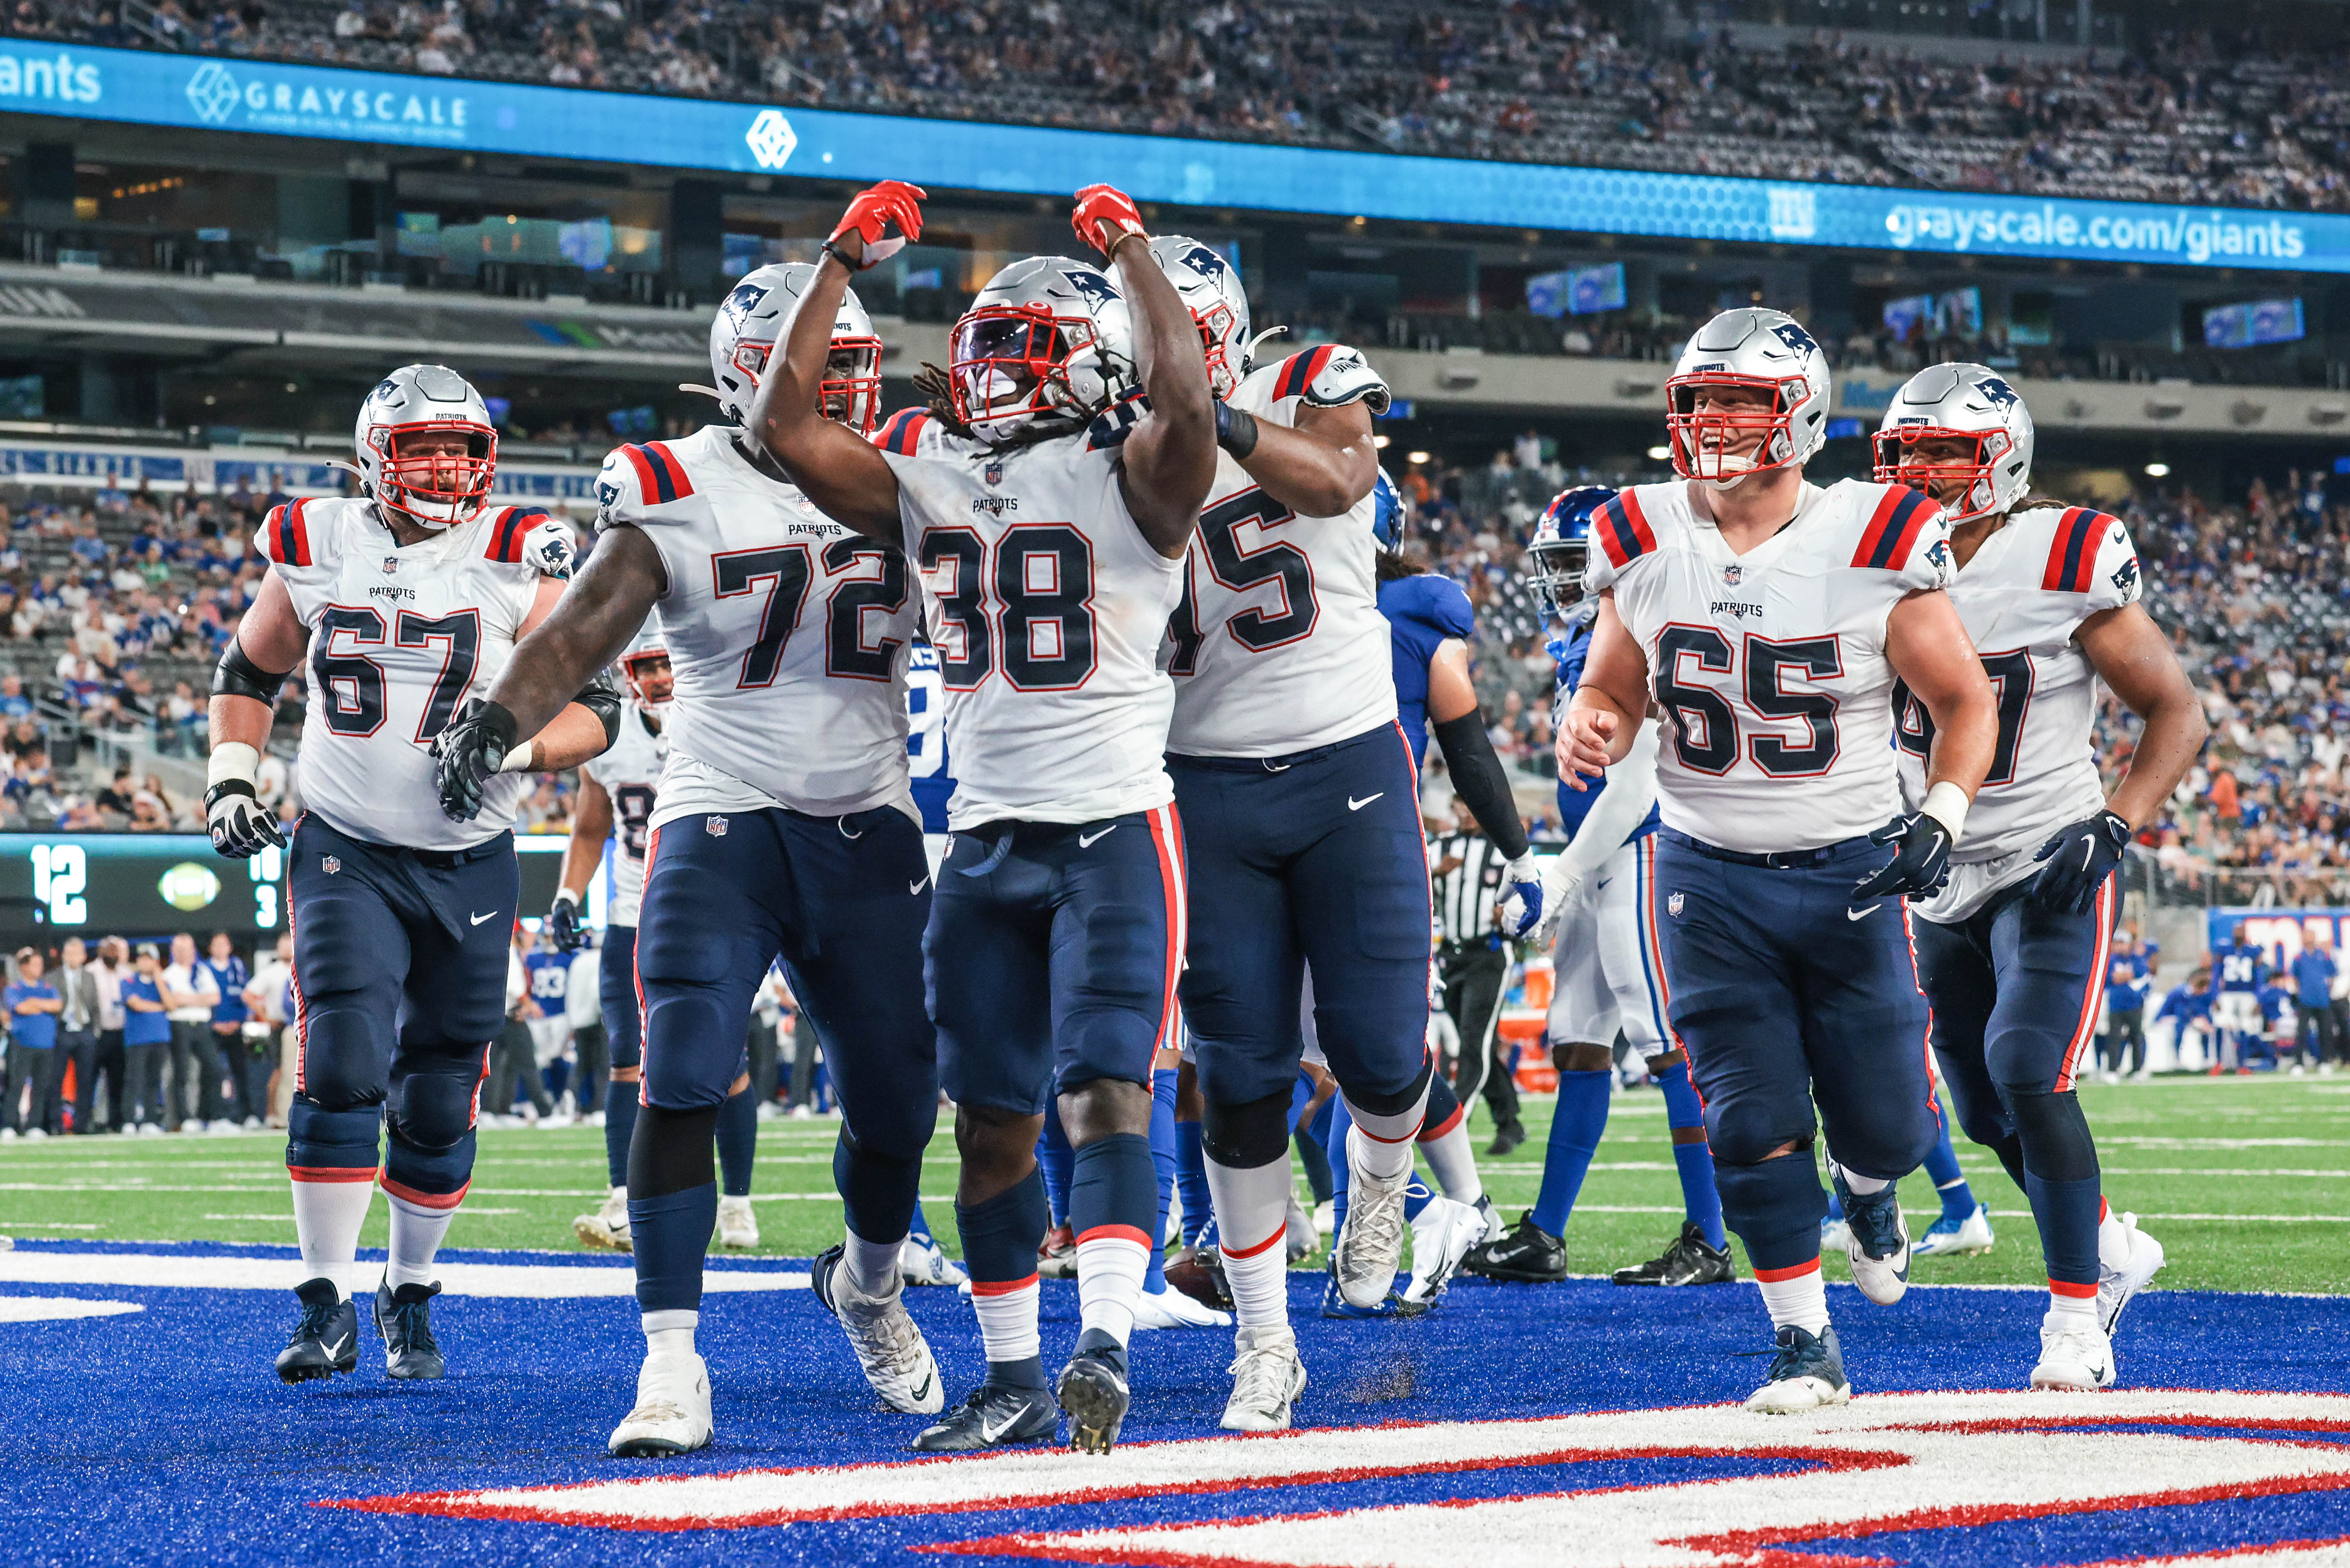 New England Patriots running back Rhamondre Stevenson (38) celebrates his touchdown with teammates during the second half against the New England Patriots at MetLife Stadium.